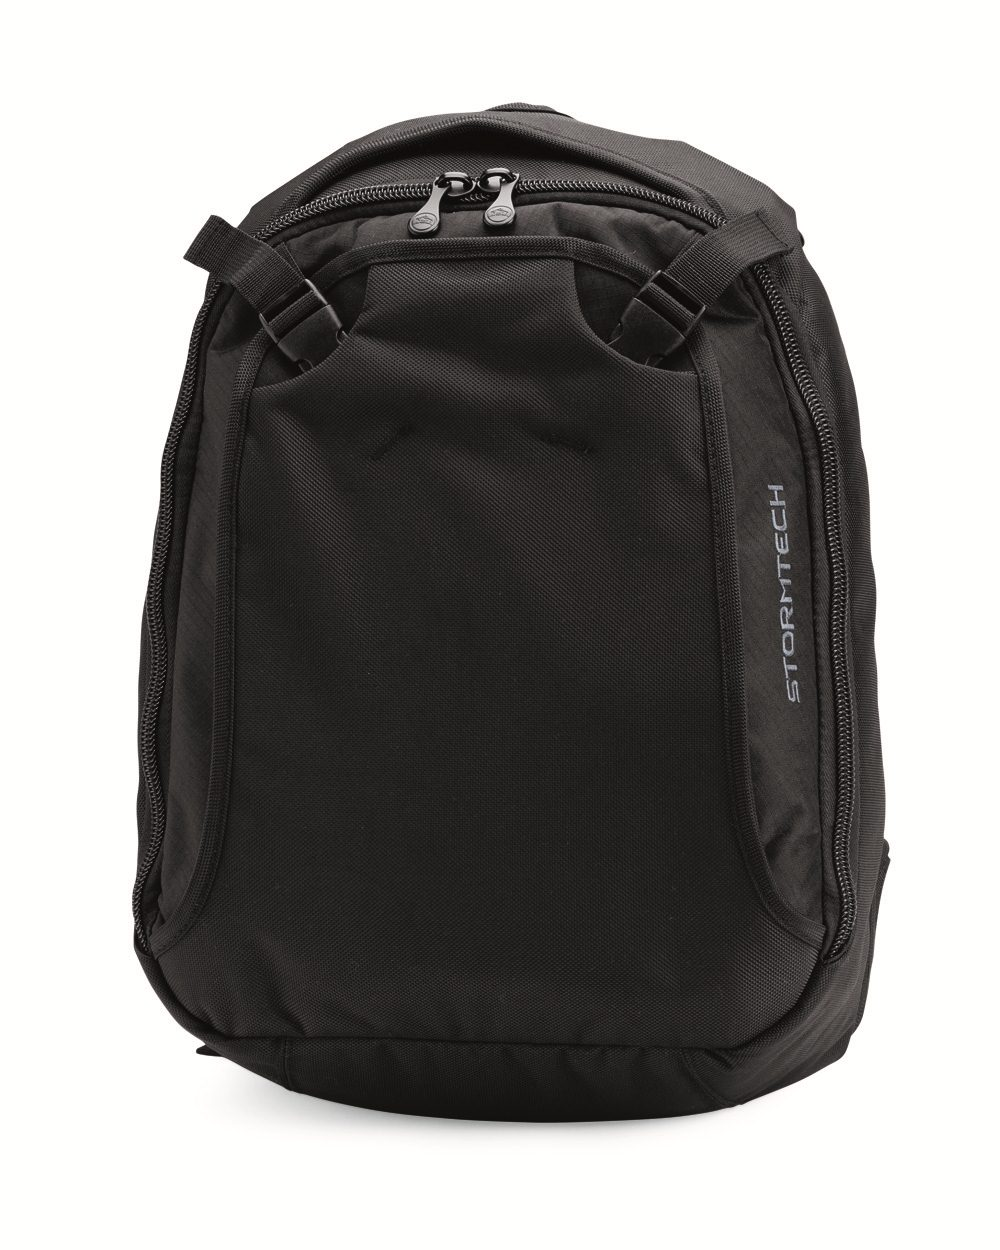 Stormtech Logic Laptop Pack - EXP-1